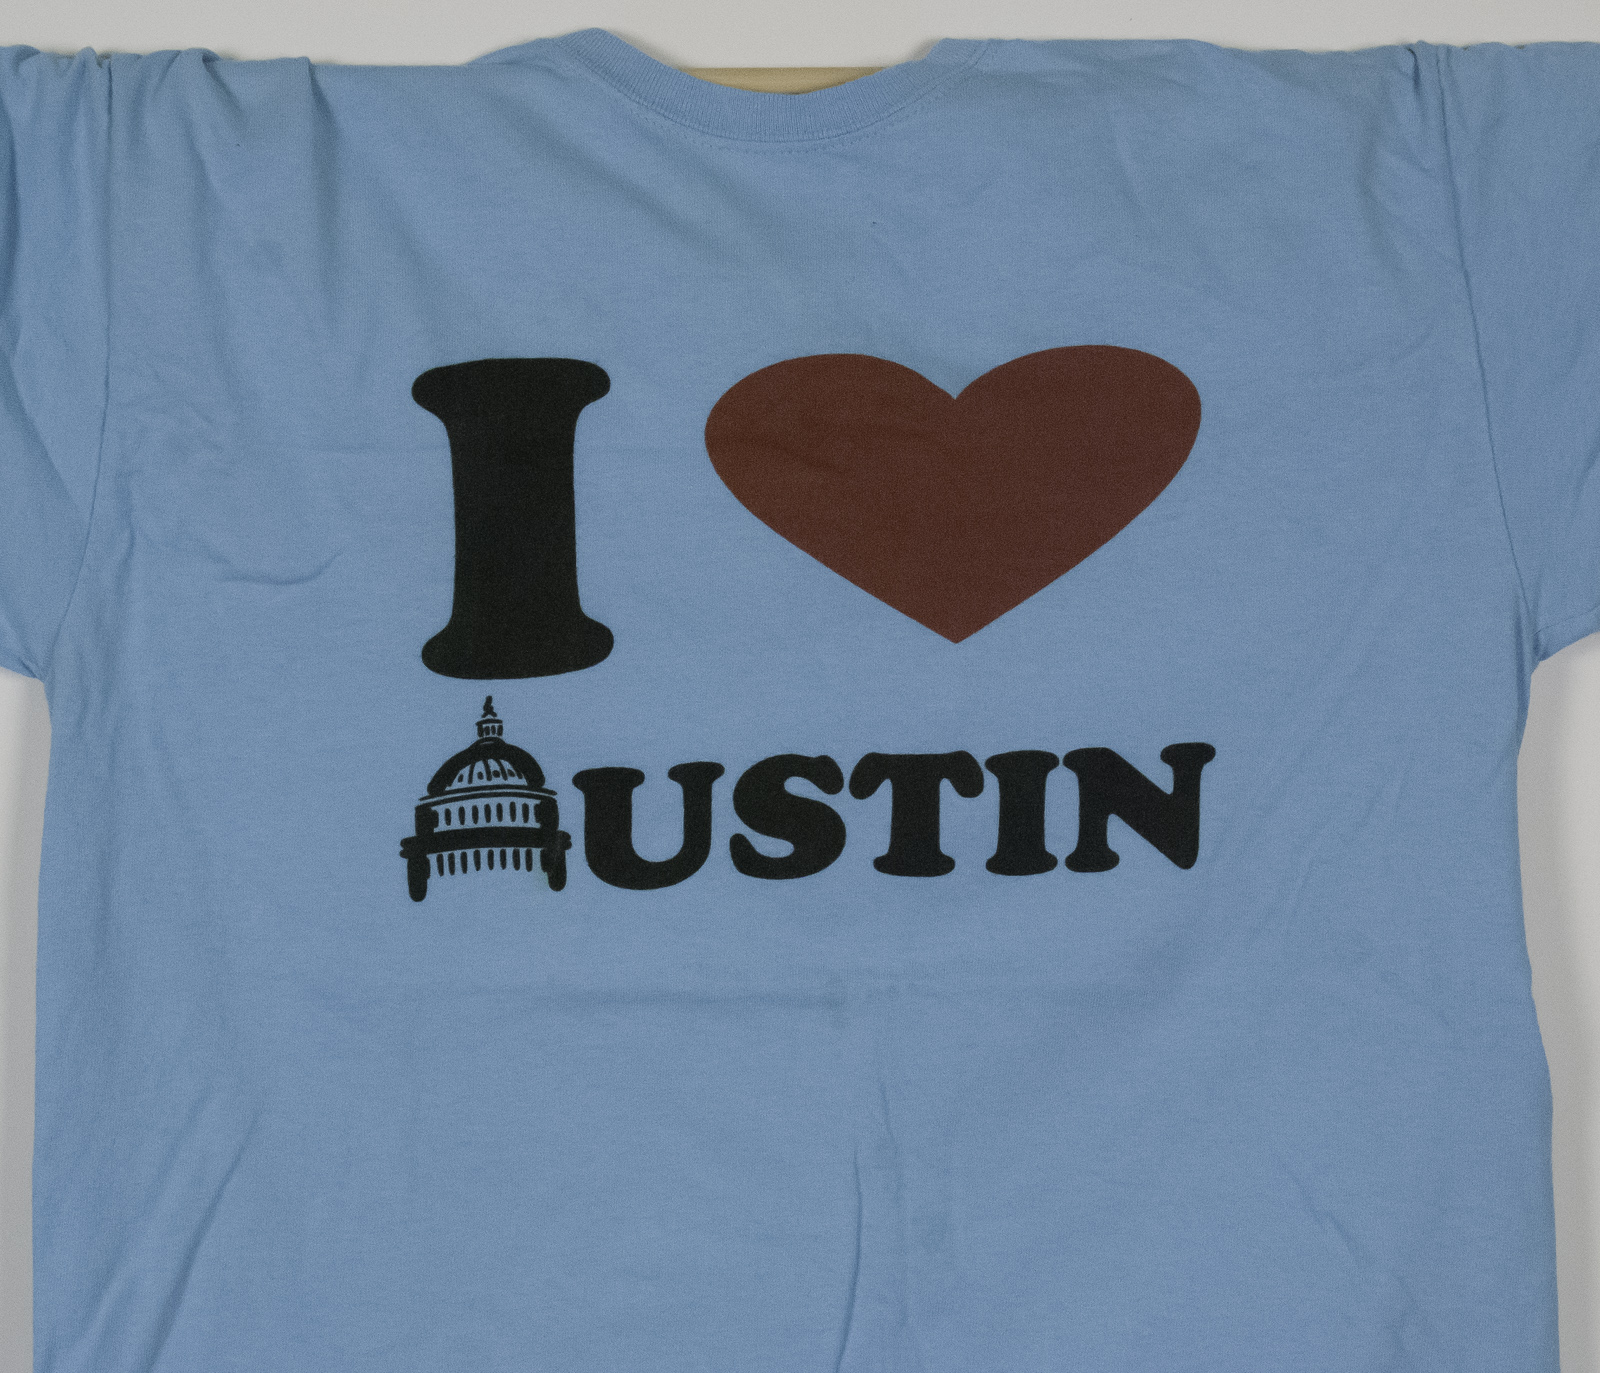 Art wear a t shirt and screen printing blog for Austin t shirt printing